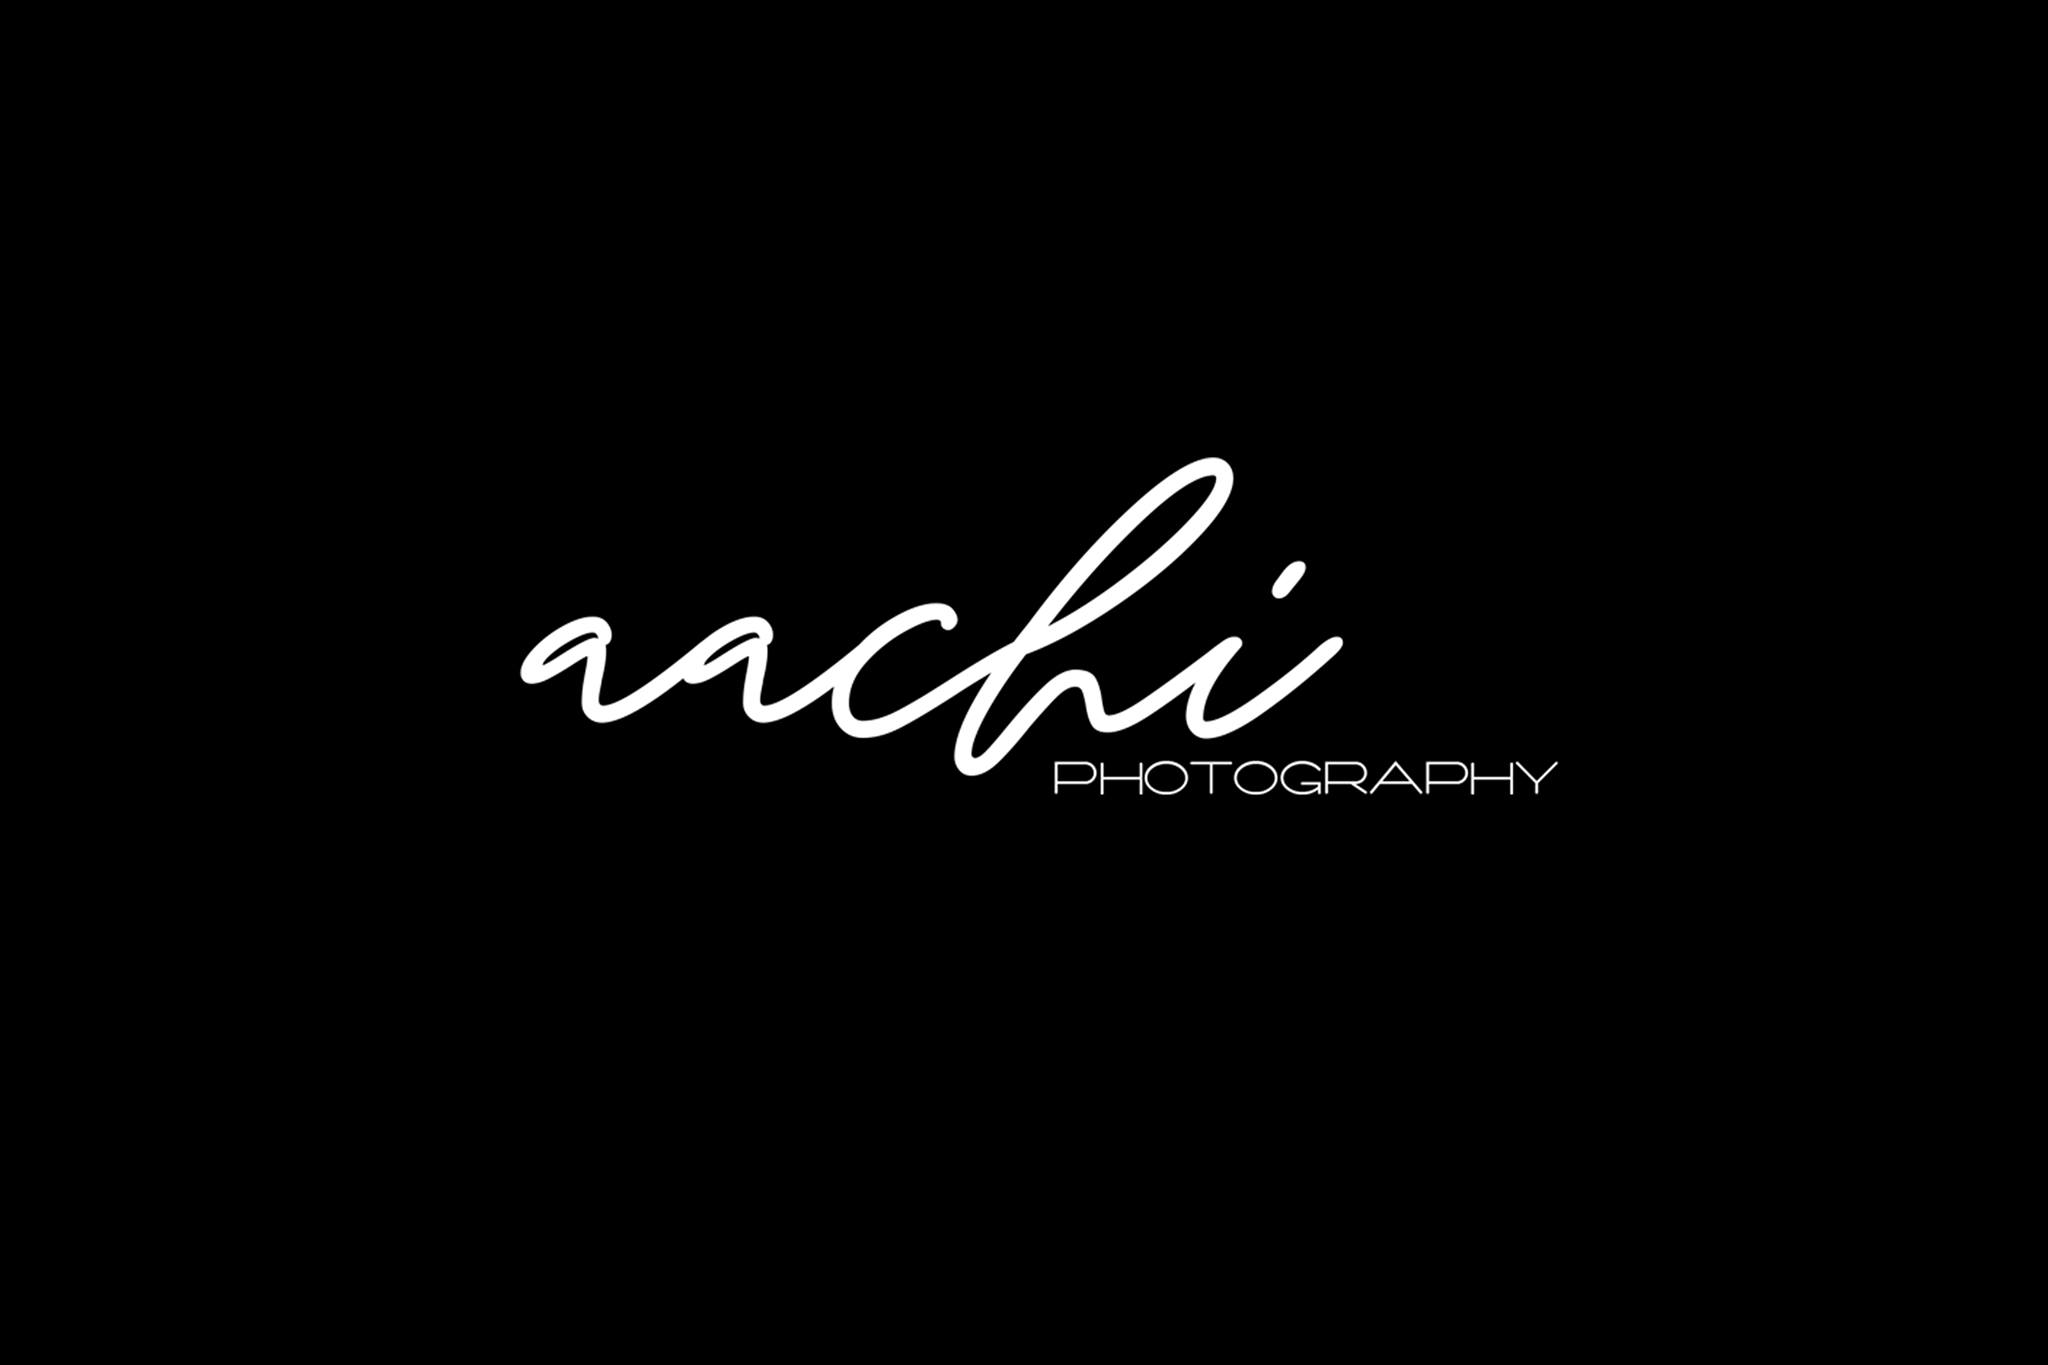 Aachi Photography